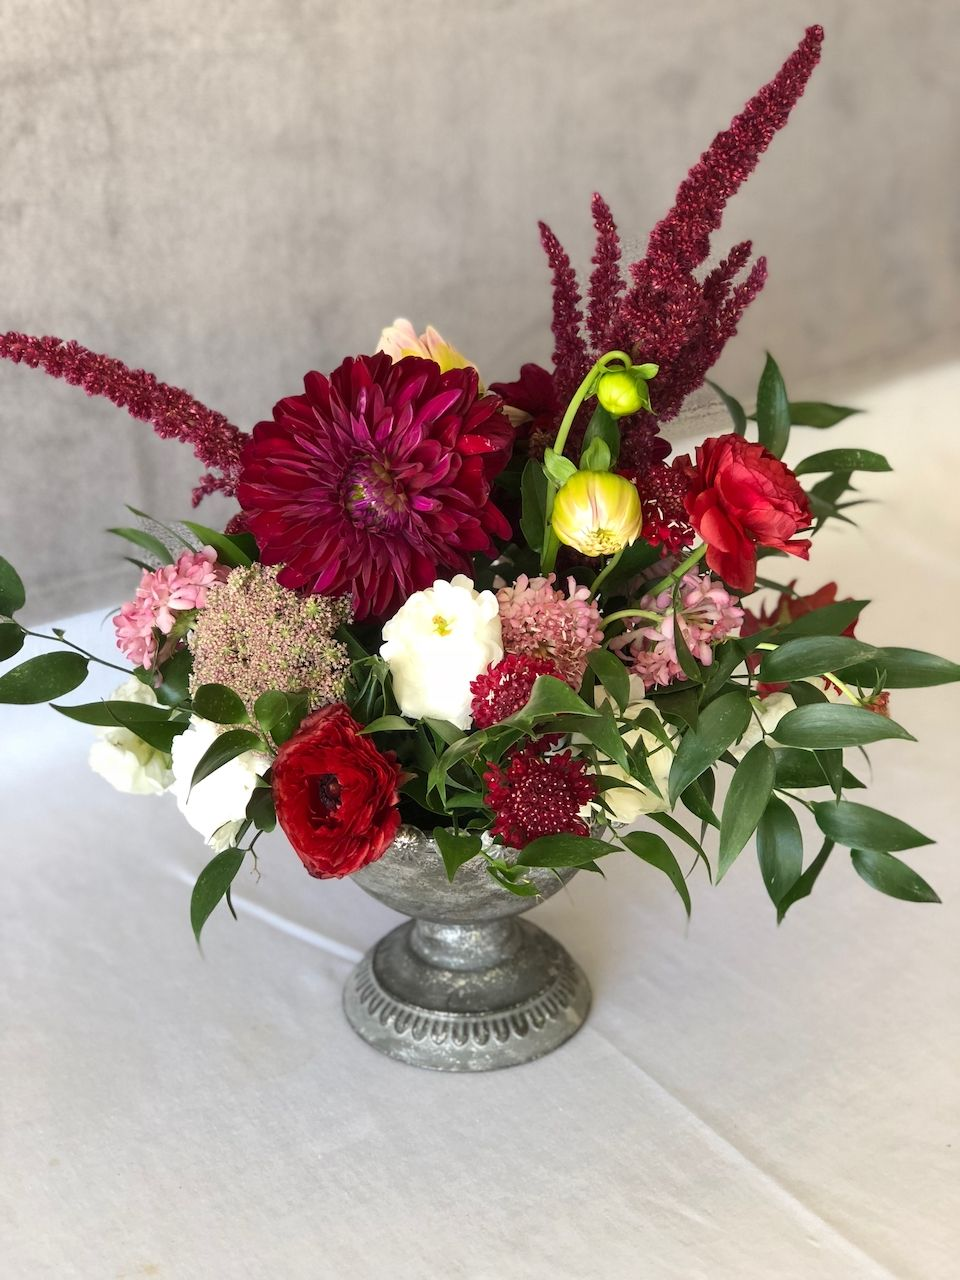 This Beautiful Centerpiece with Dahlias and Ranunculus